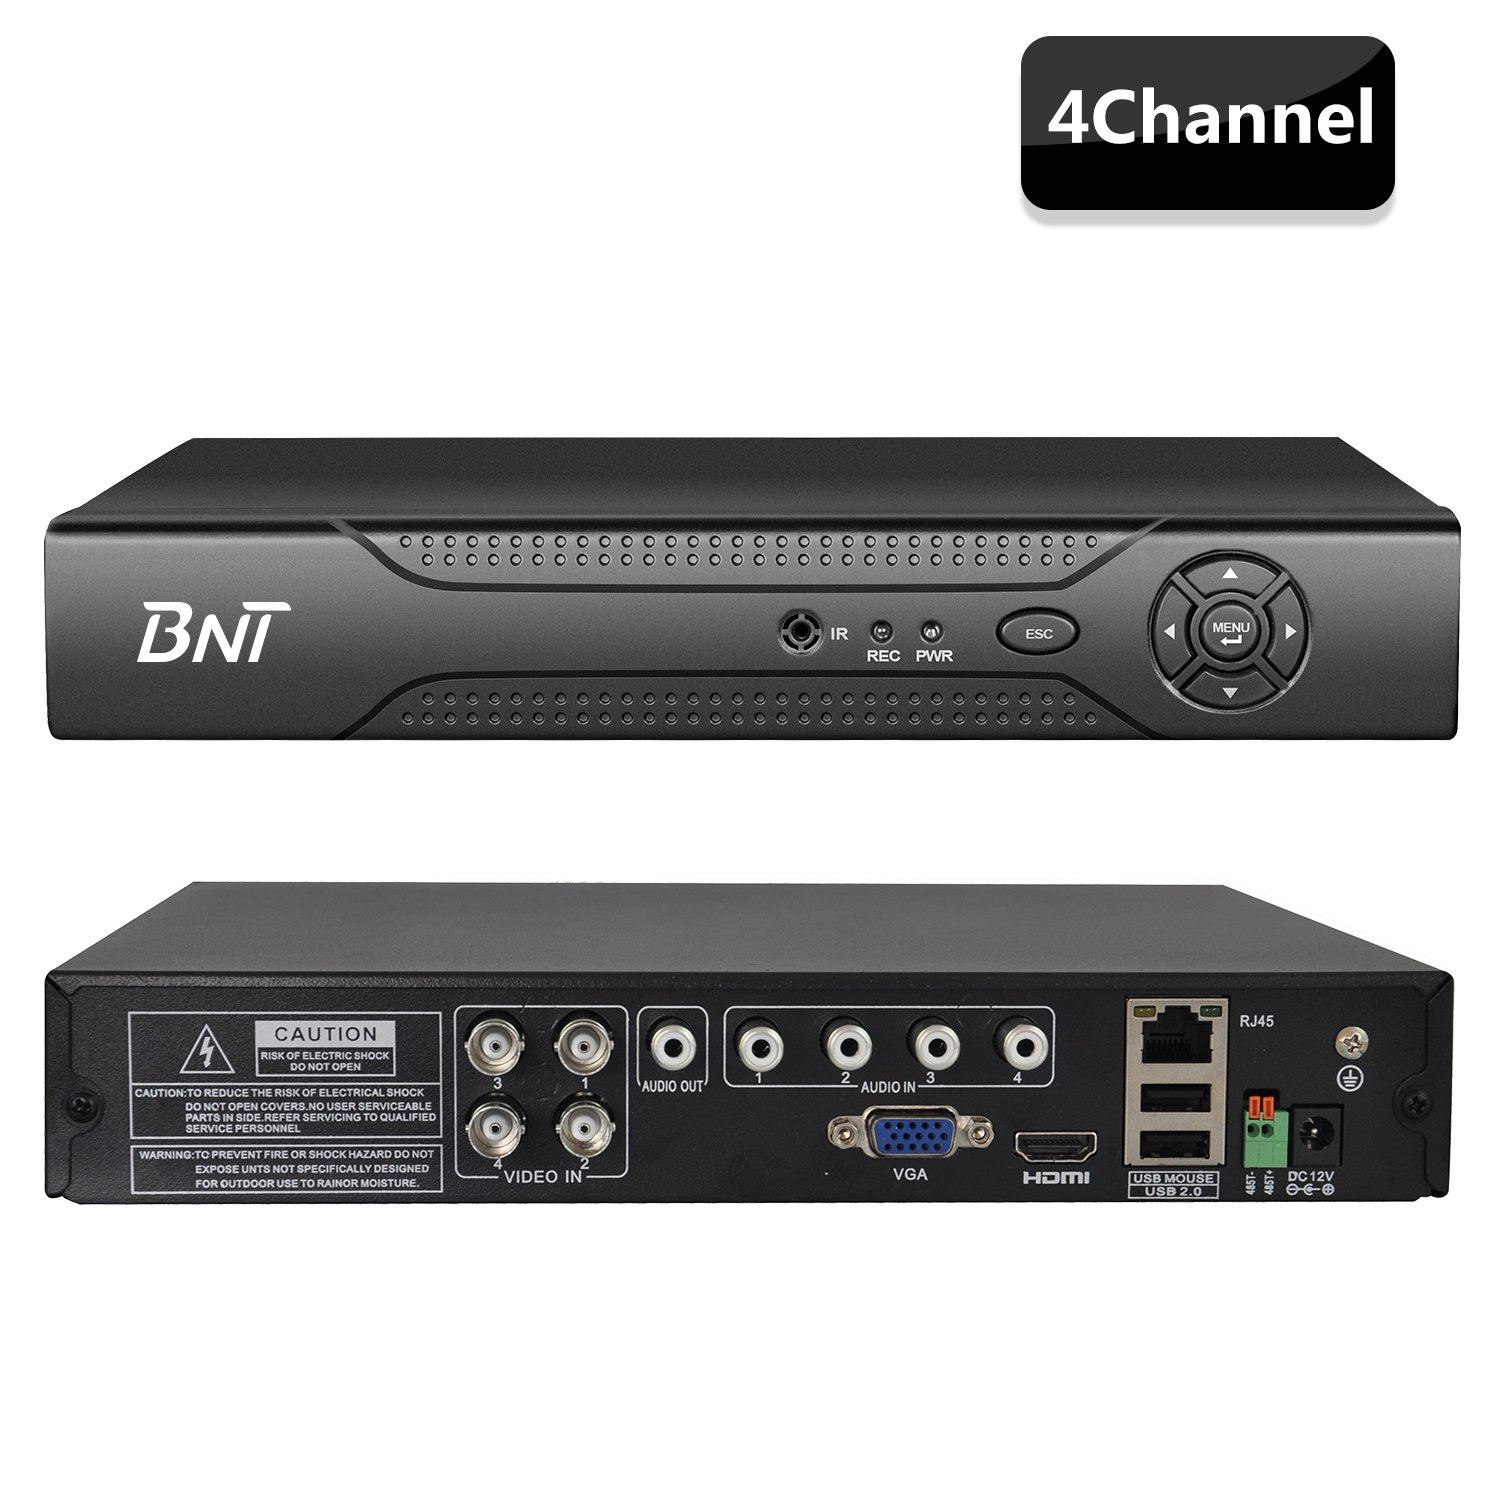 4CH AHD DVR with Monitor, AHD Security System Tollar 858045 BNT AHD Security Camera System